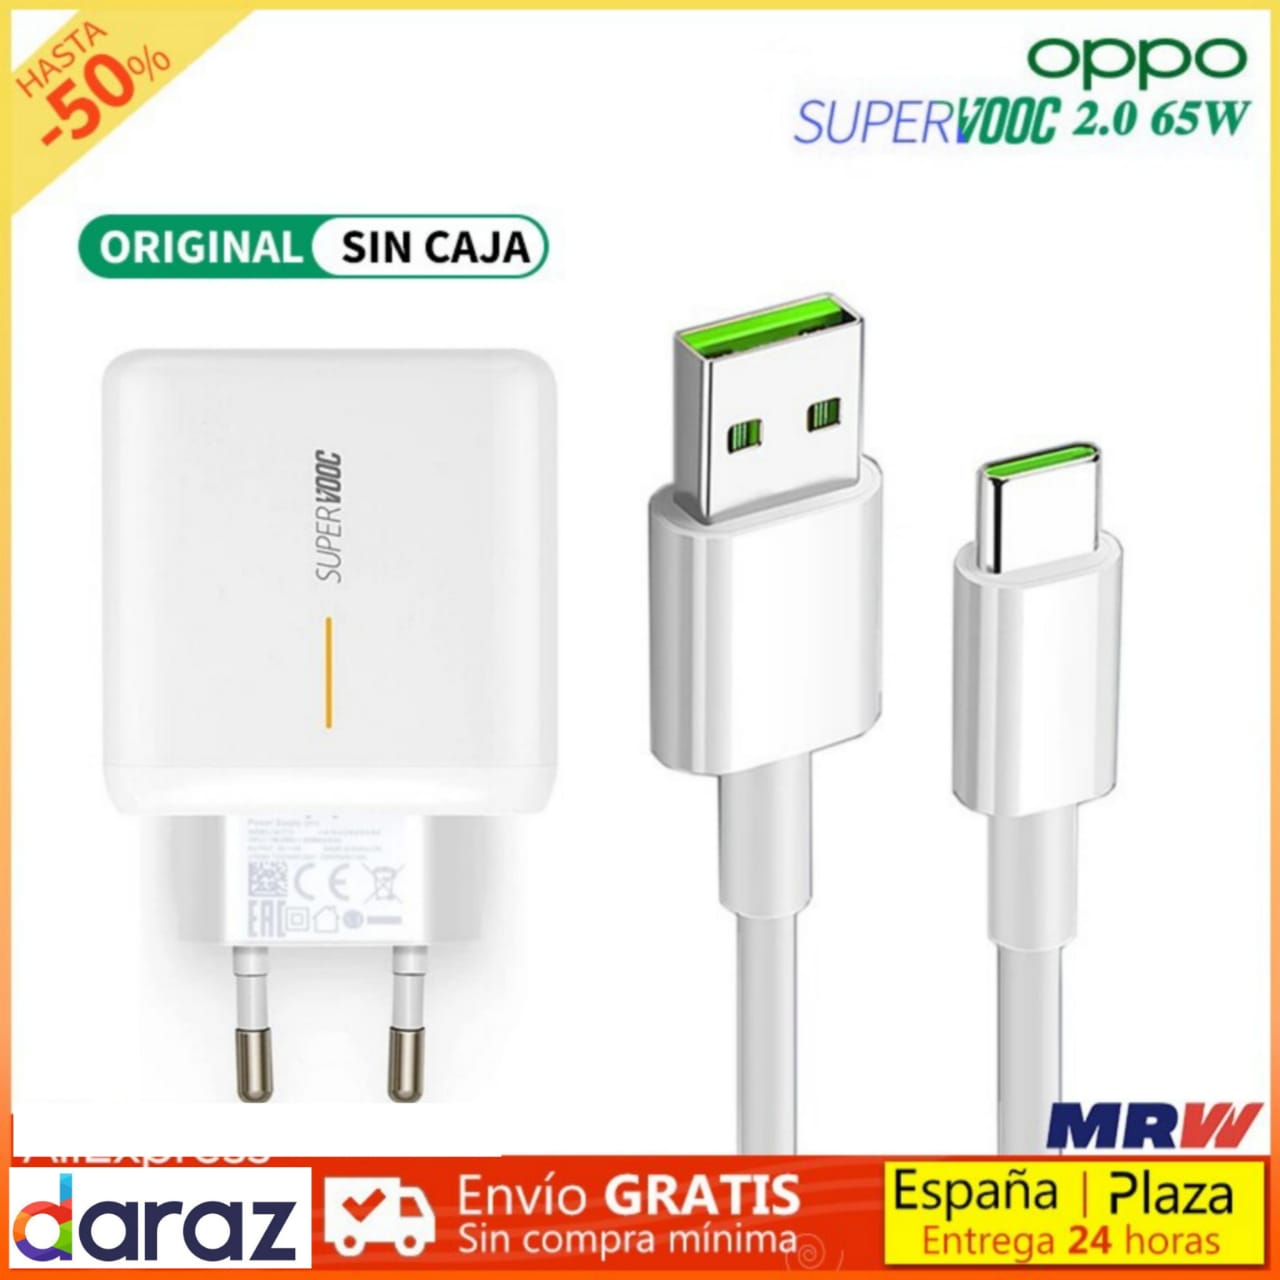 Original 65W Super VOOC Charger For Realme_ OPPO 5th Generation  VOOC Fast Charger 5V/4A Charging for Reno 10X Z K3 Find X R17 Pro Fast Adaptor with Type-C Data Line Cable Original Super VOOC Charger For Realme_ OPPO 5th Generation Original VOOC Fast